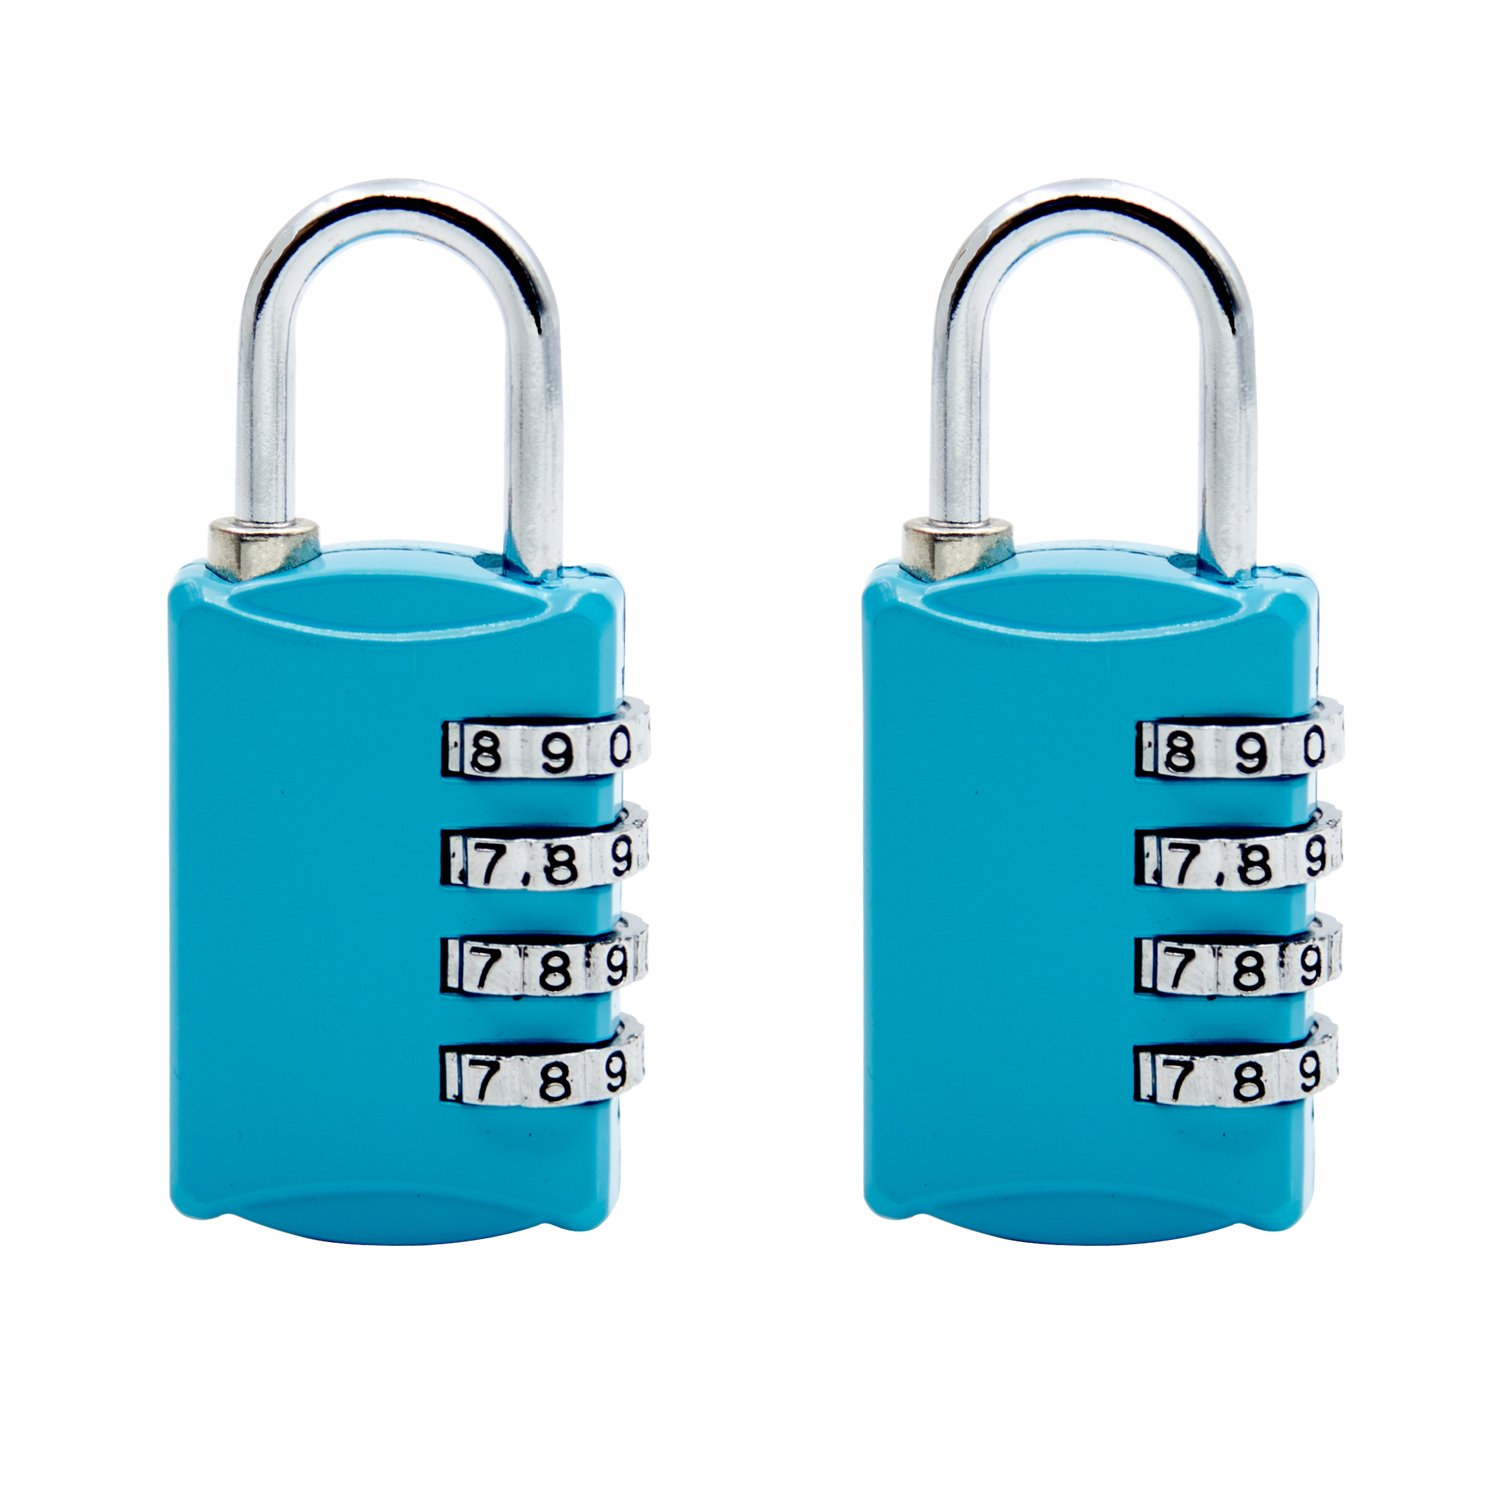 2 Pack Combination Lock, SCYA 4 Digit Pack Padlock Set for School, Employee, Gym & Sports Locker, Case, Toolbox, Fence, Hasp Cabinet Storage Locks - Zinc Alloy - Anti Rust - Weather Proof(blue)